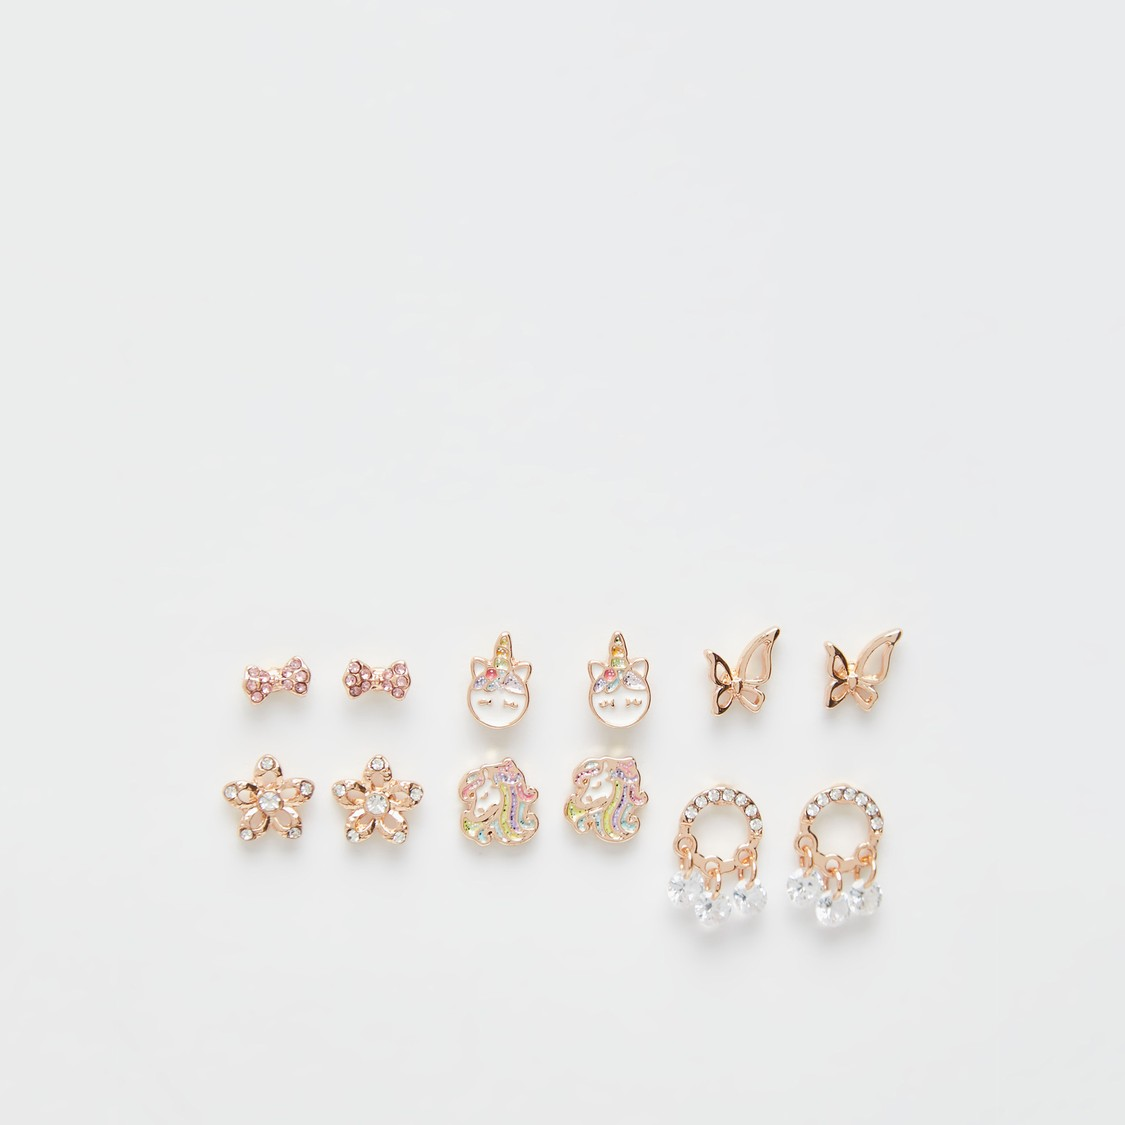 Set of 6 - Studded Earrings with Push Back Closure